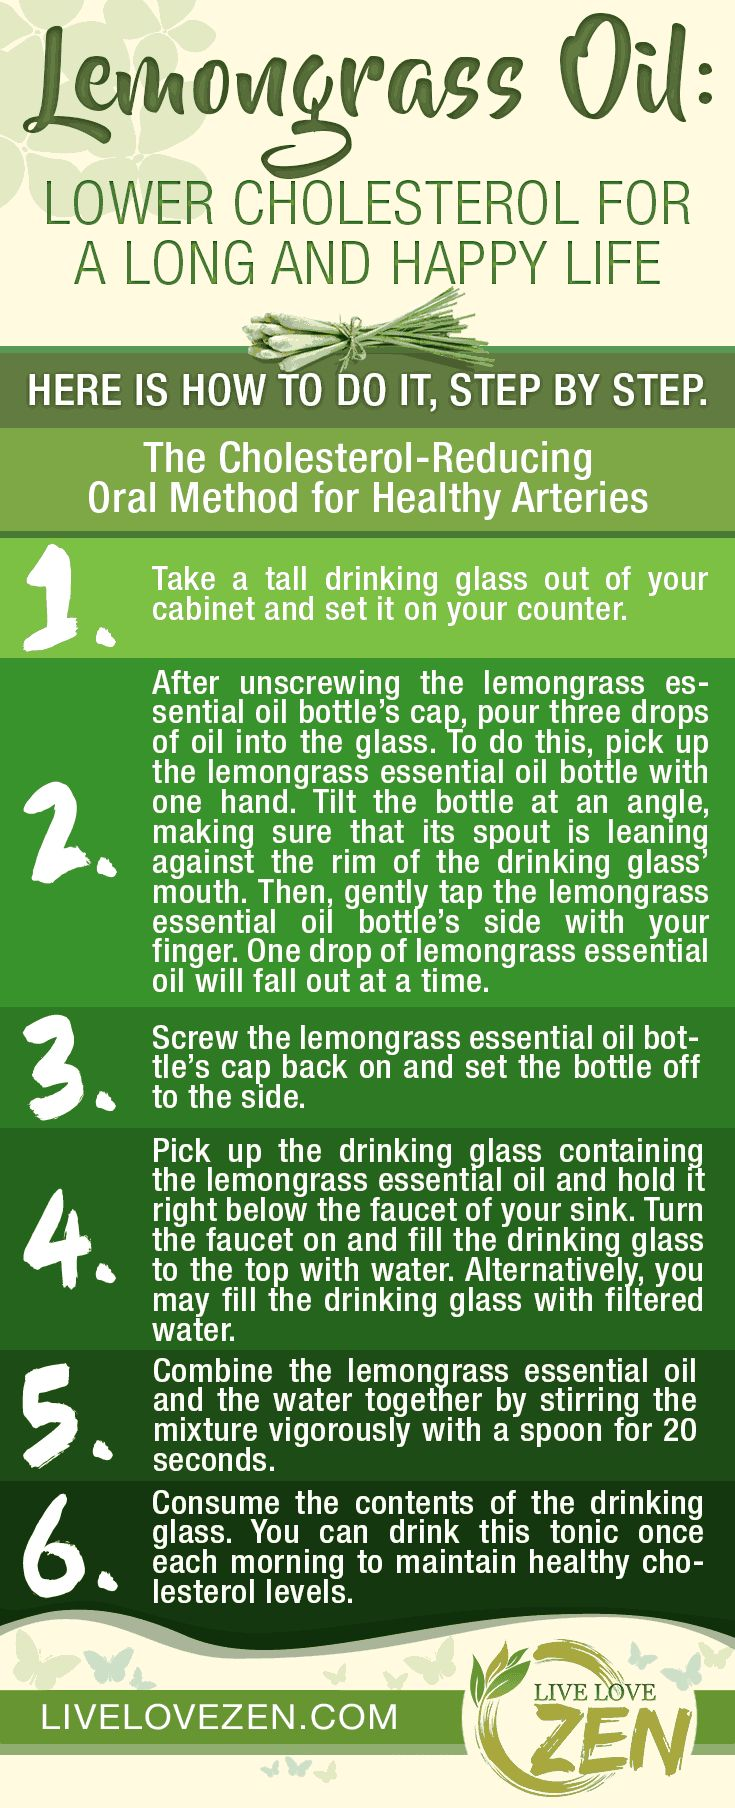 Lemongrass Oil: Lower Cholesterol for a Long and Happy Life